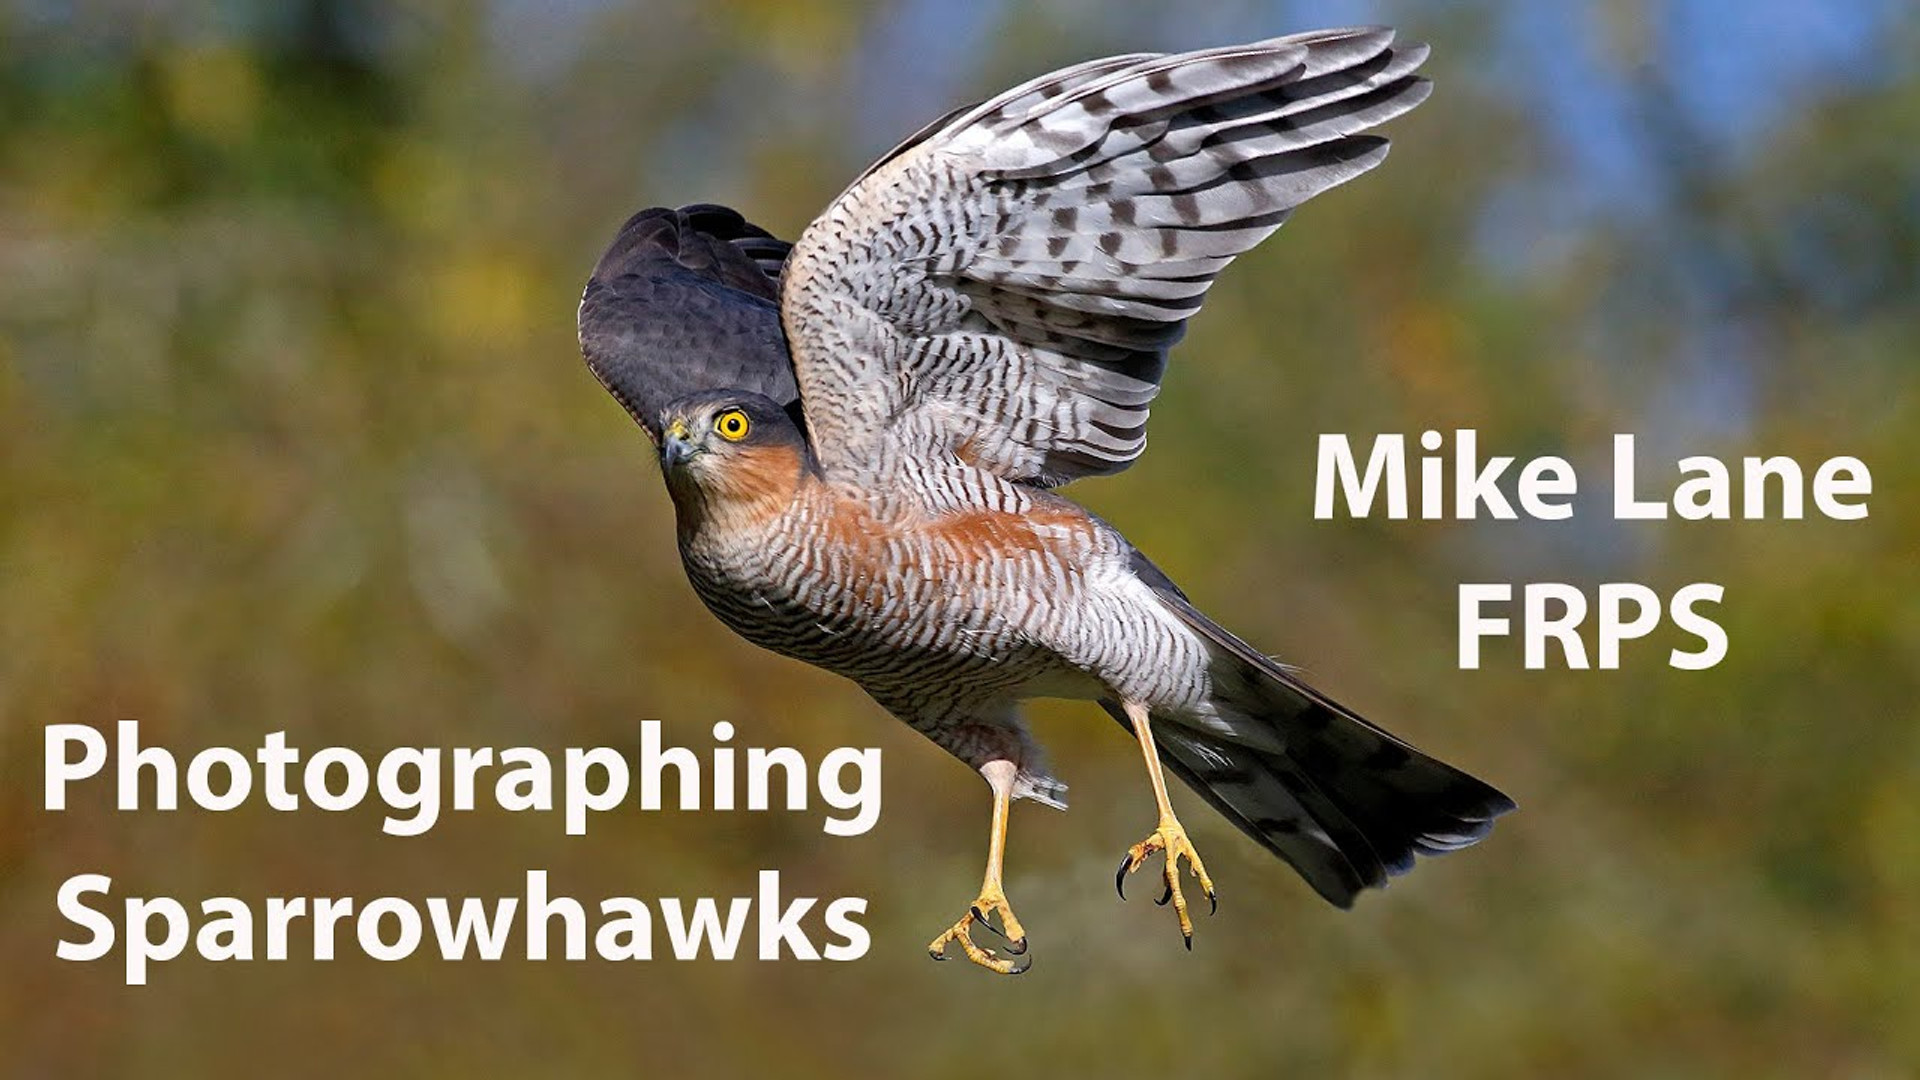 Photographing Sparrowhawks